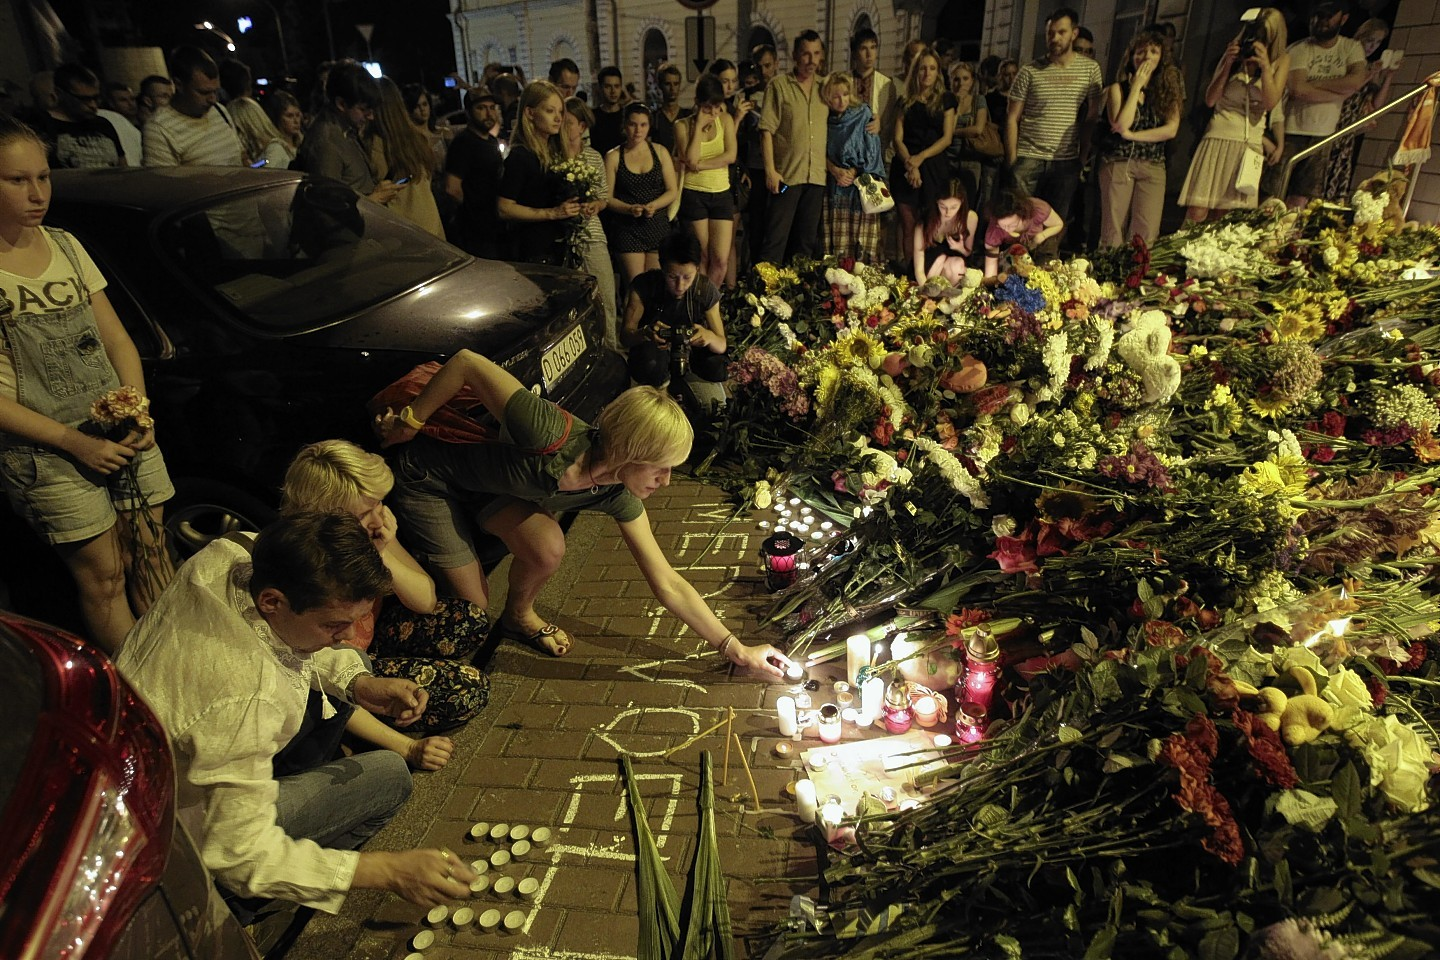 Tributes to the victimes of the Malaysian AIrlines plane crash